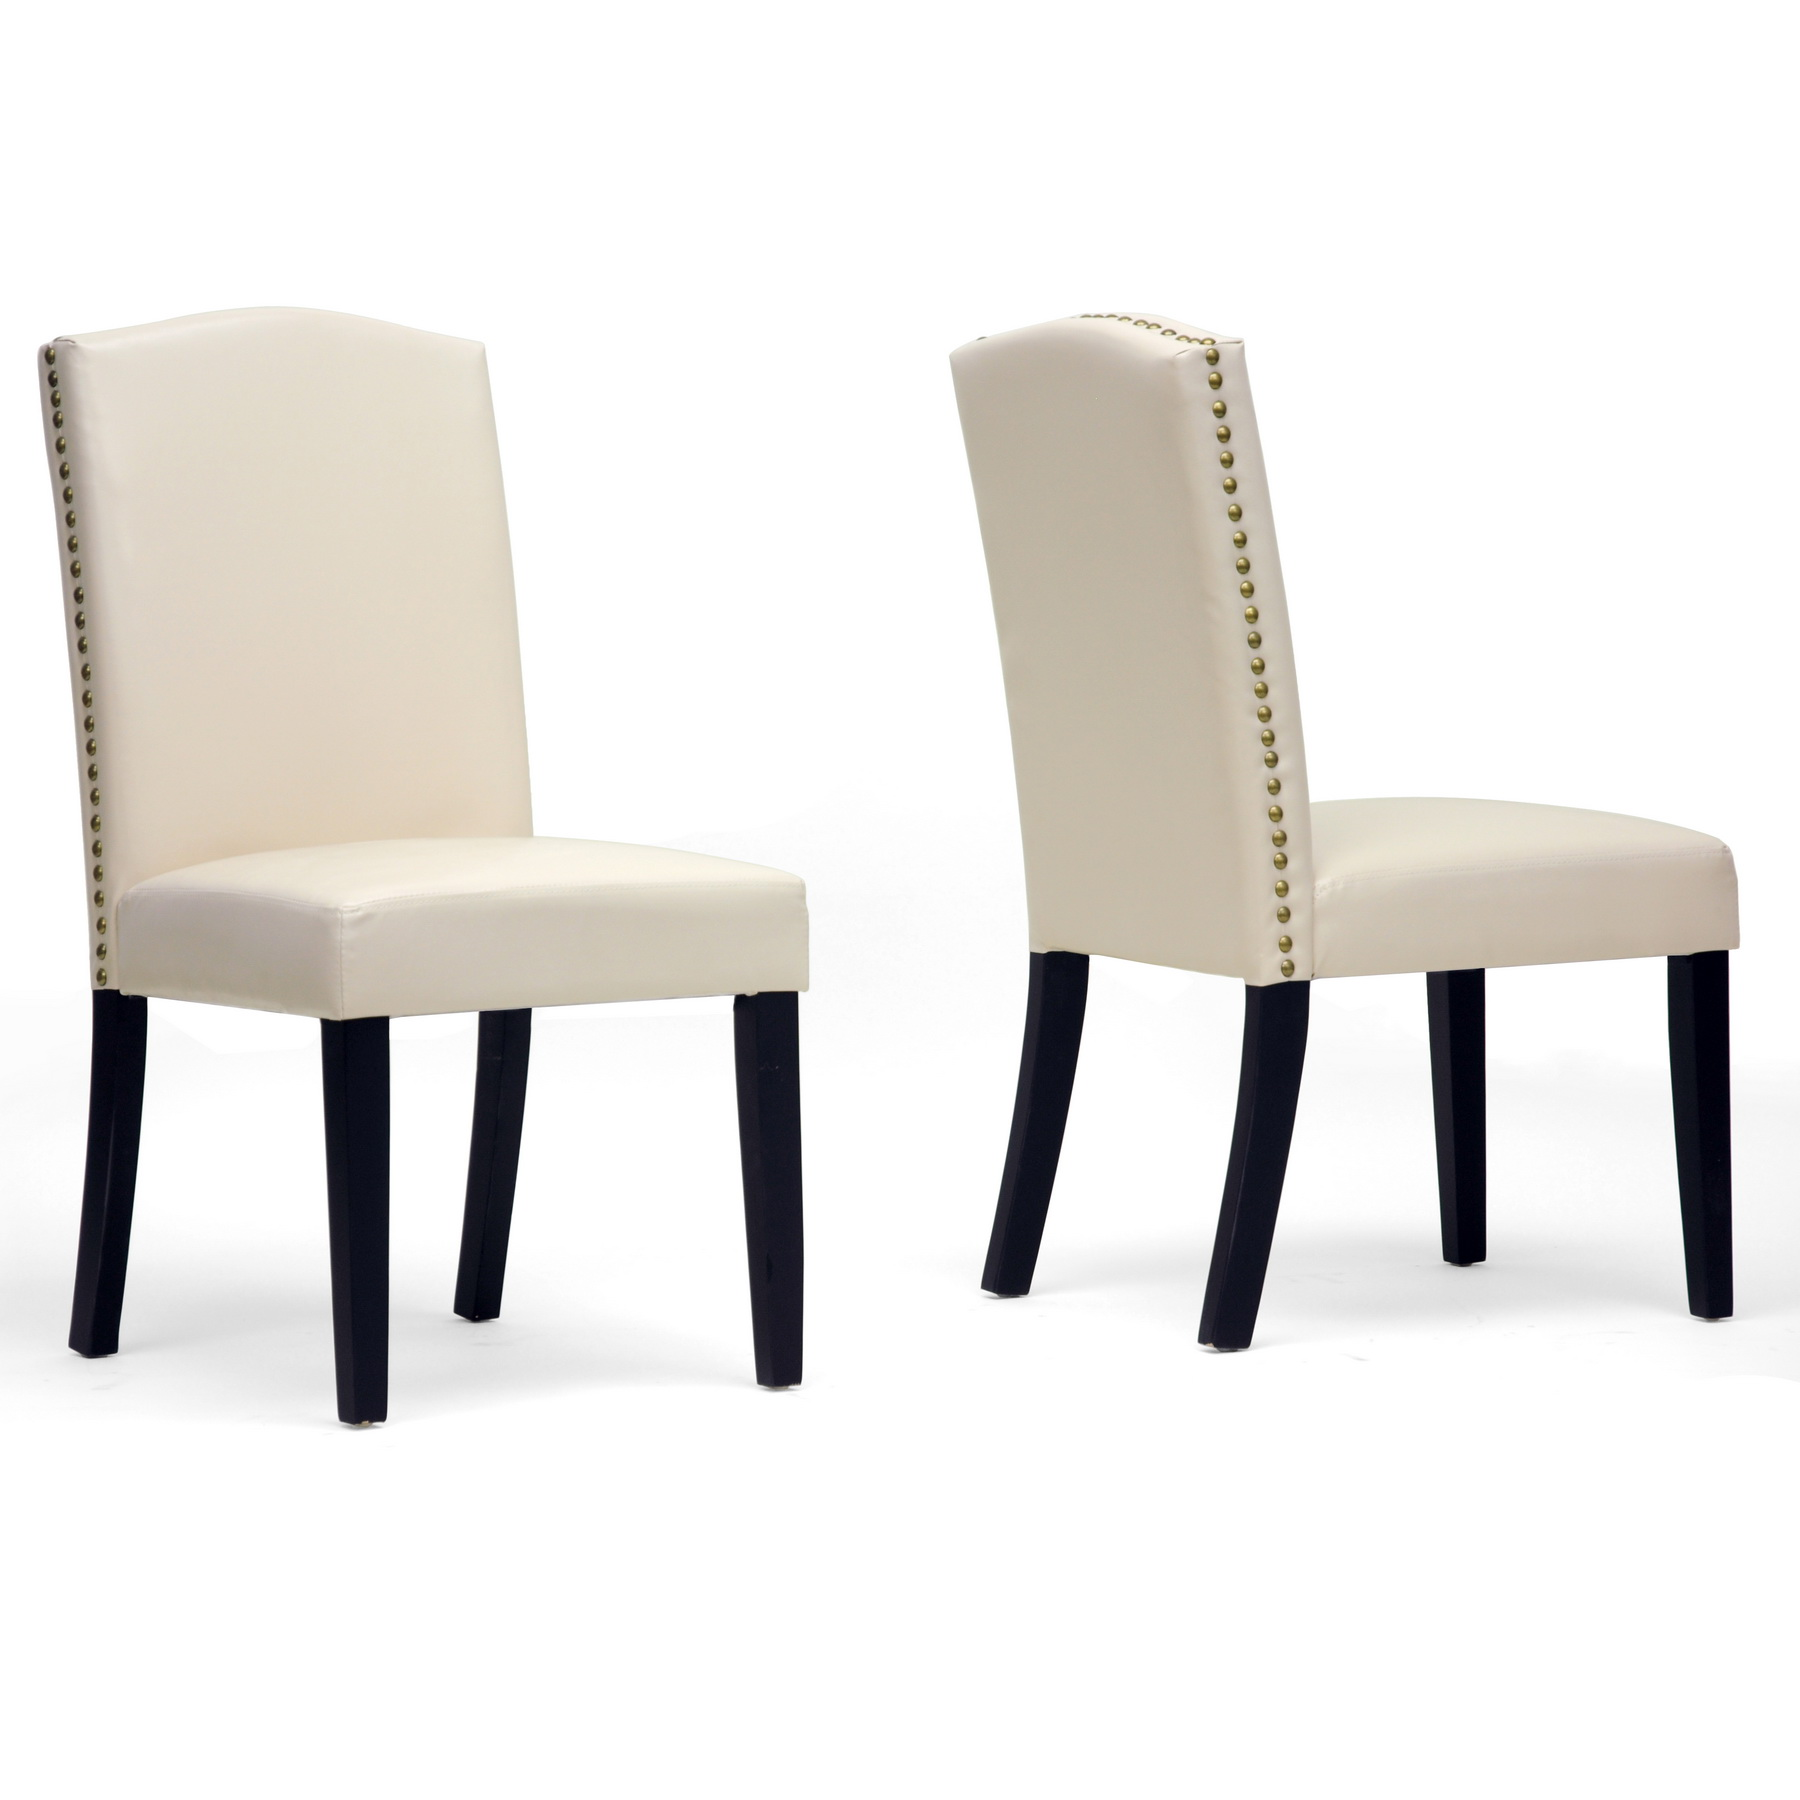 White upholstered dining chair displaying infinite for Upholstered dining chairs